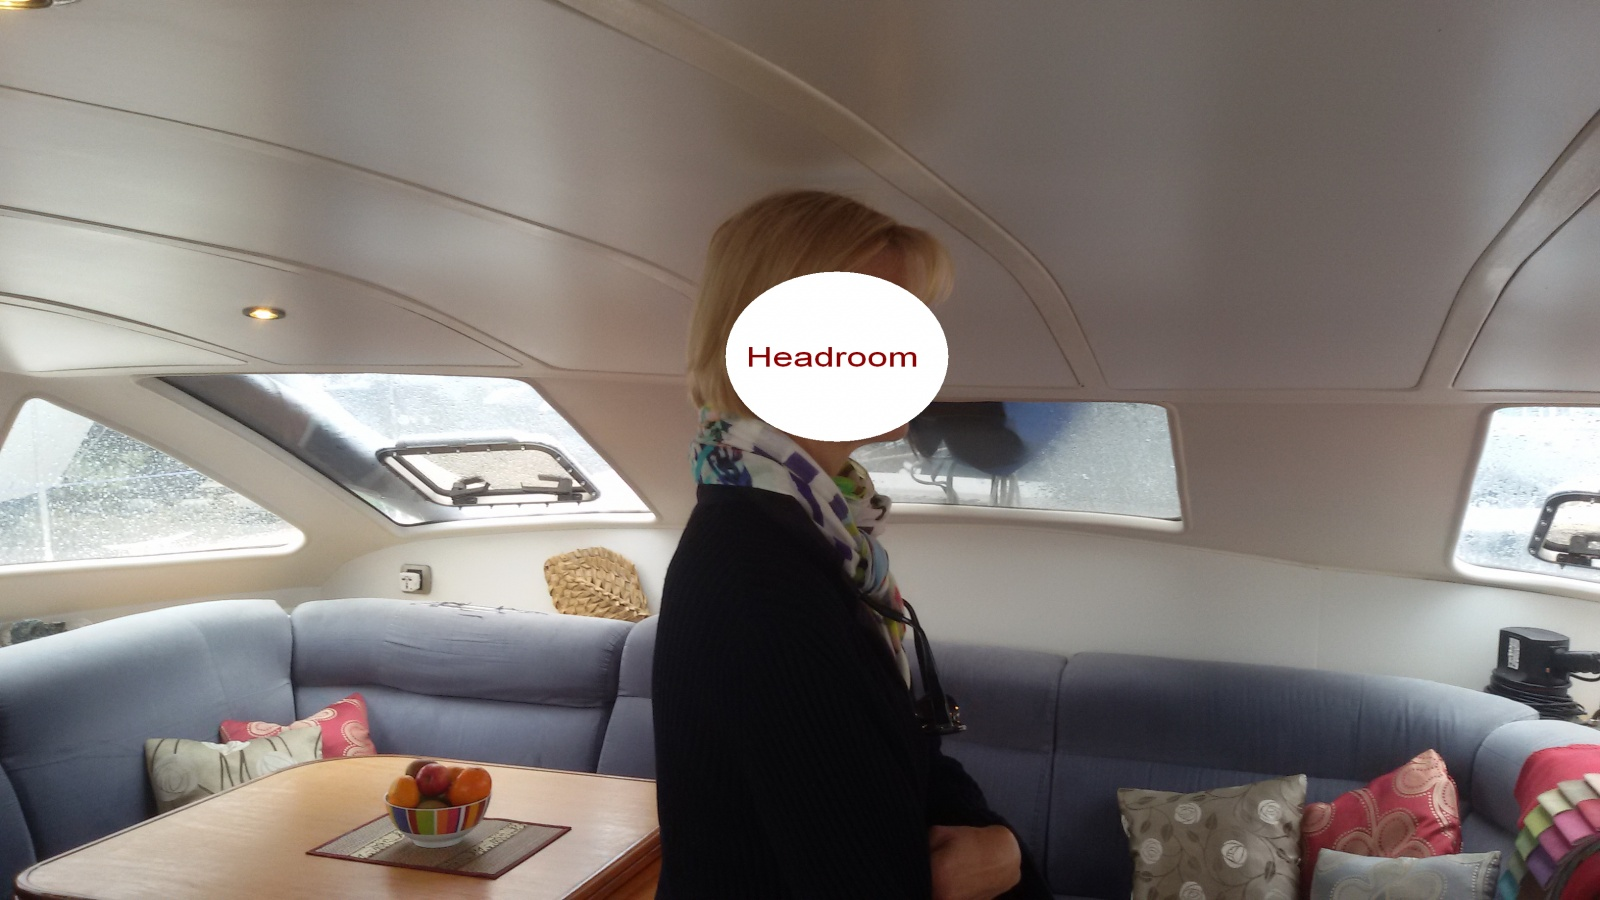 Click image for larger version  Name:Headroom 1.jpg Views:94 Size:320.6 KB ID:125618